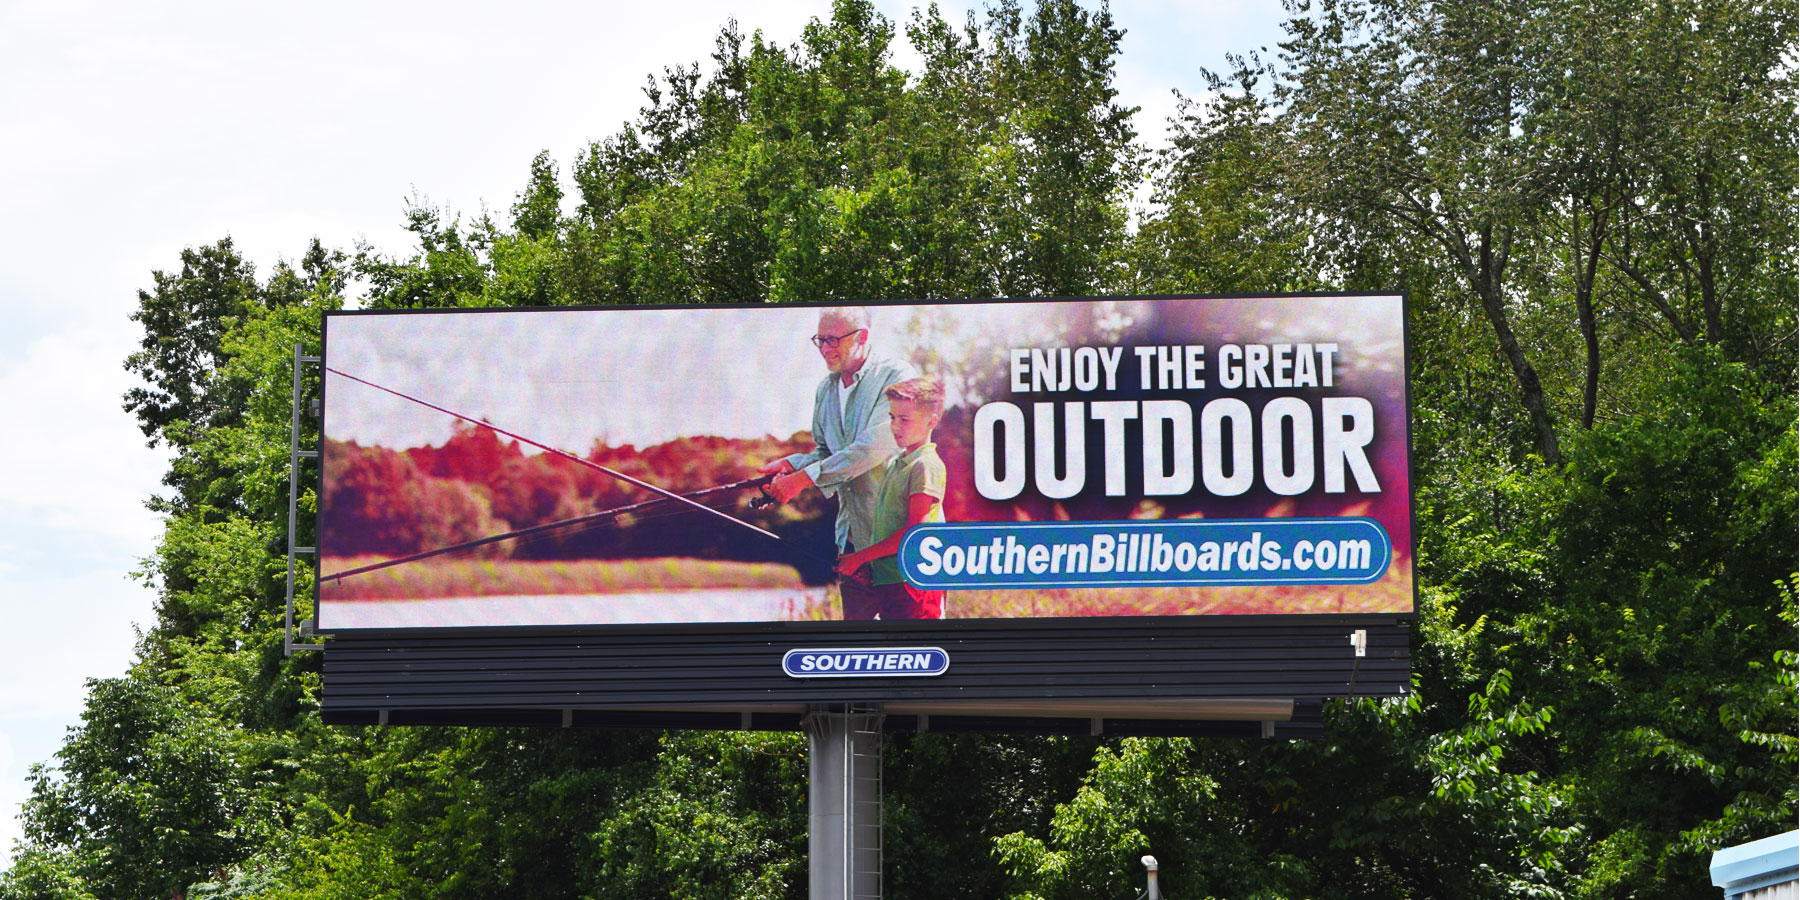 billboard showing a man fishing with a young boy